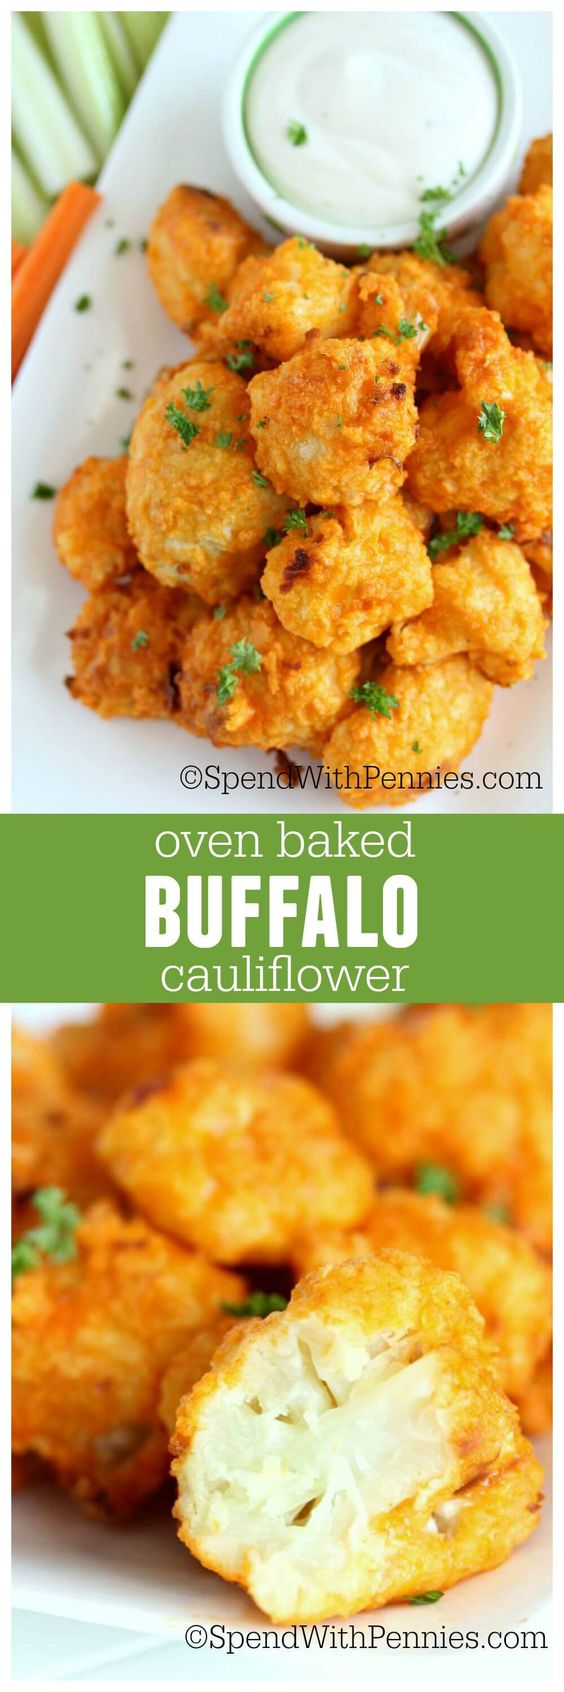 Oven Baked Buffalo Cauliflower bites are a crowd pleaser!! Tender morsels of cauliflower baked in a crispy crust and then loaded with buffalo sauce! If you like wings, you love this leaner tastier snack!: